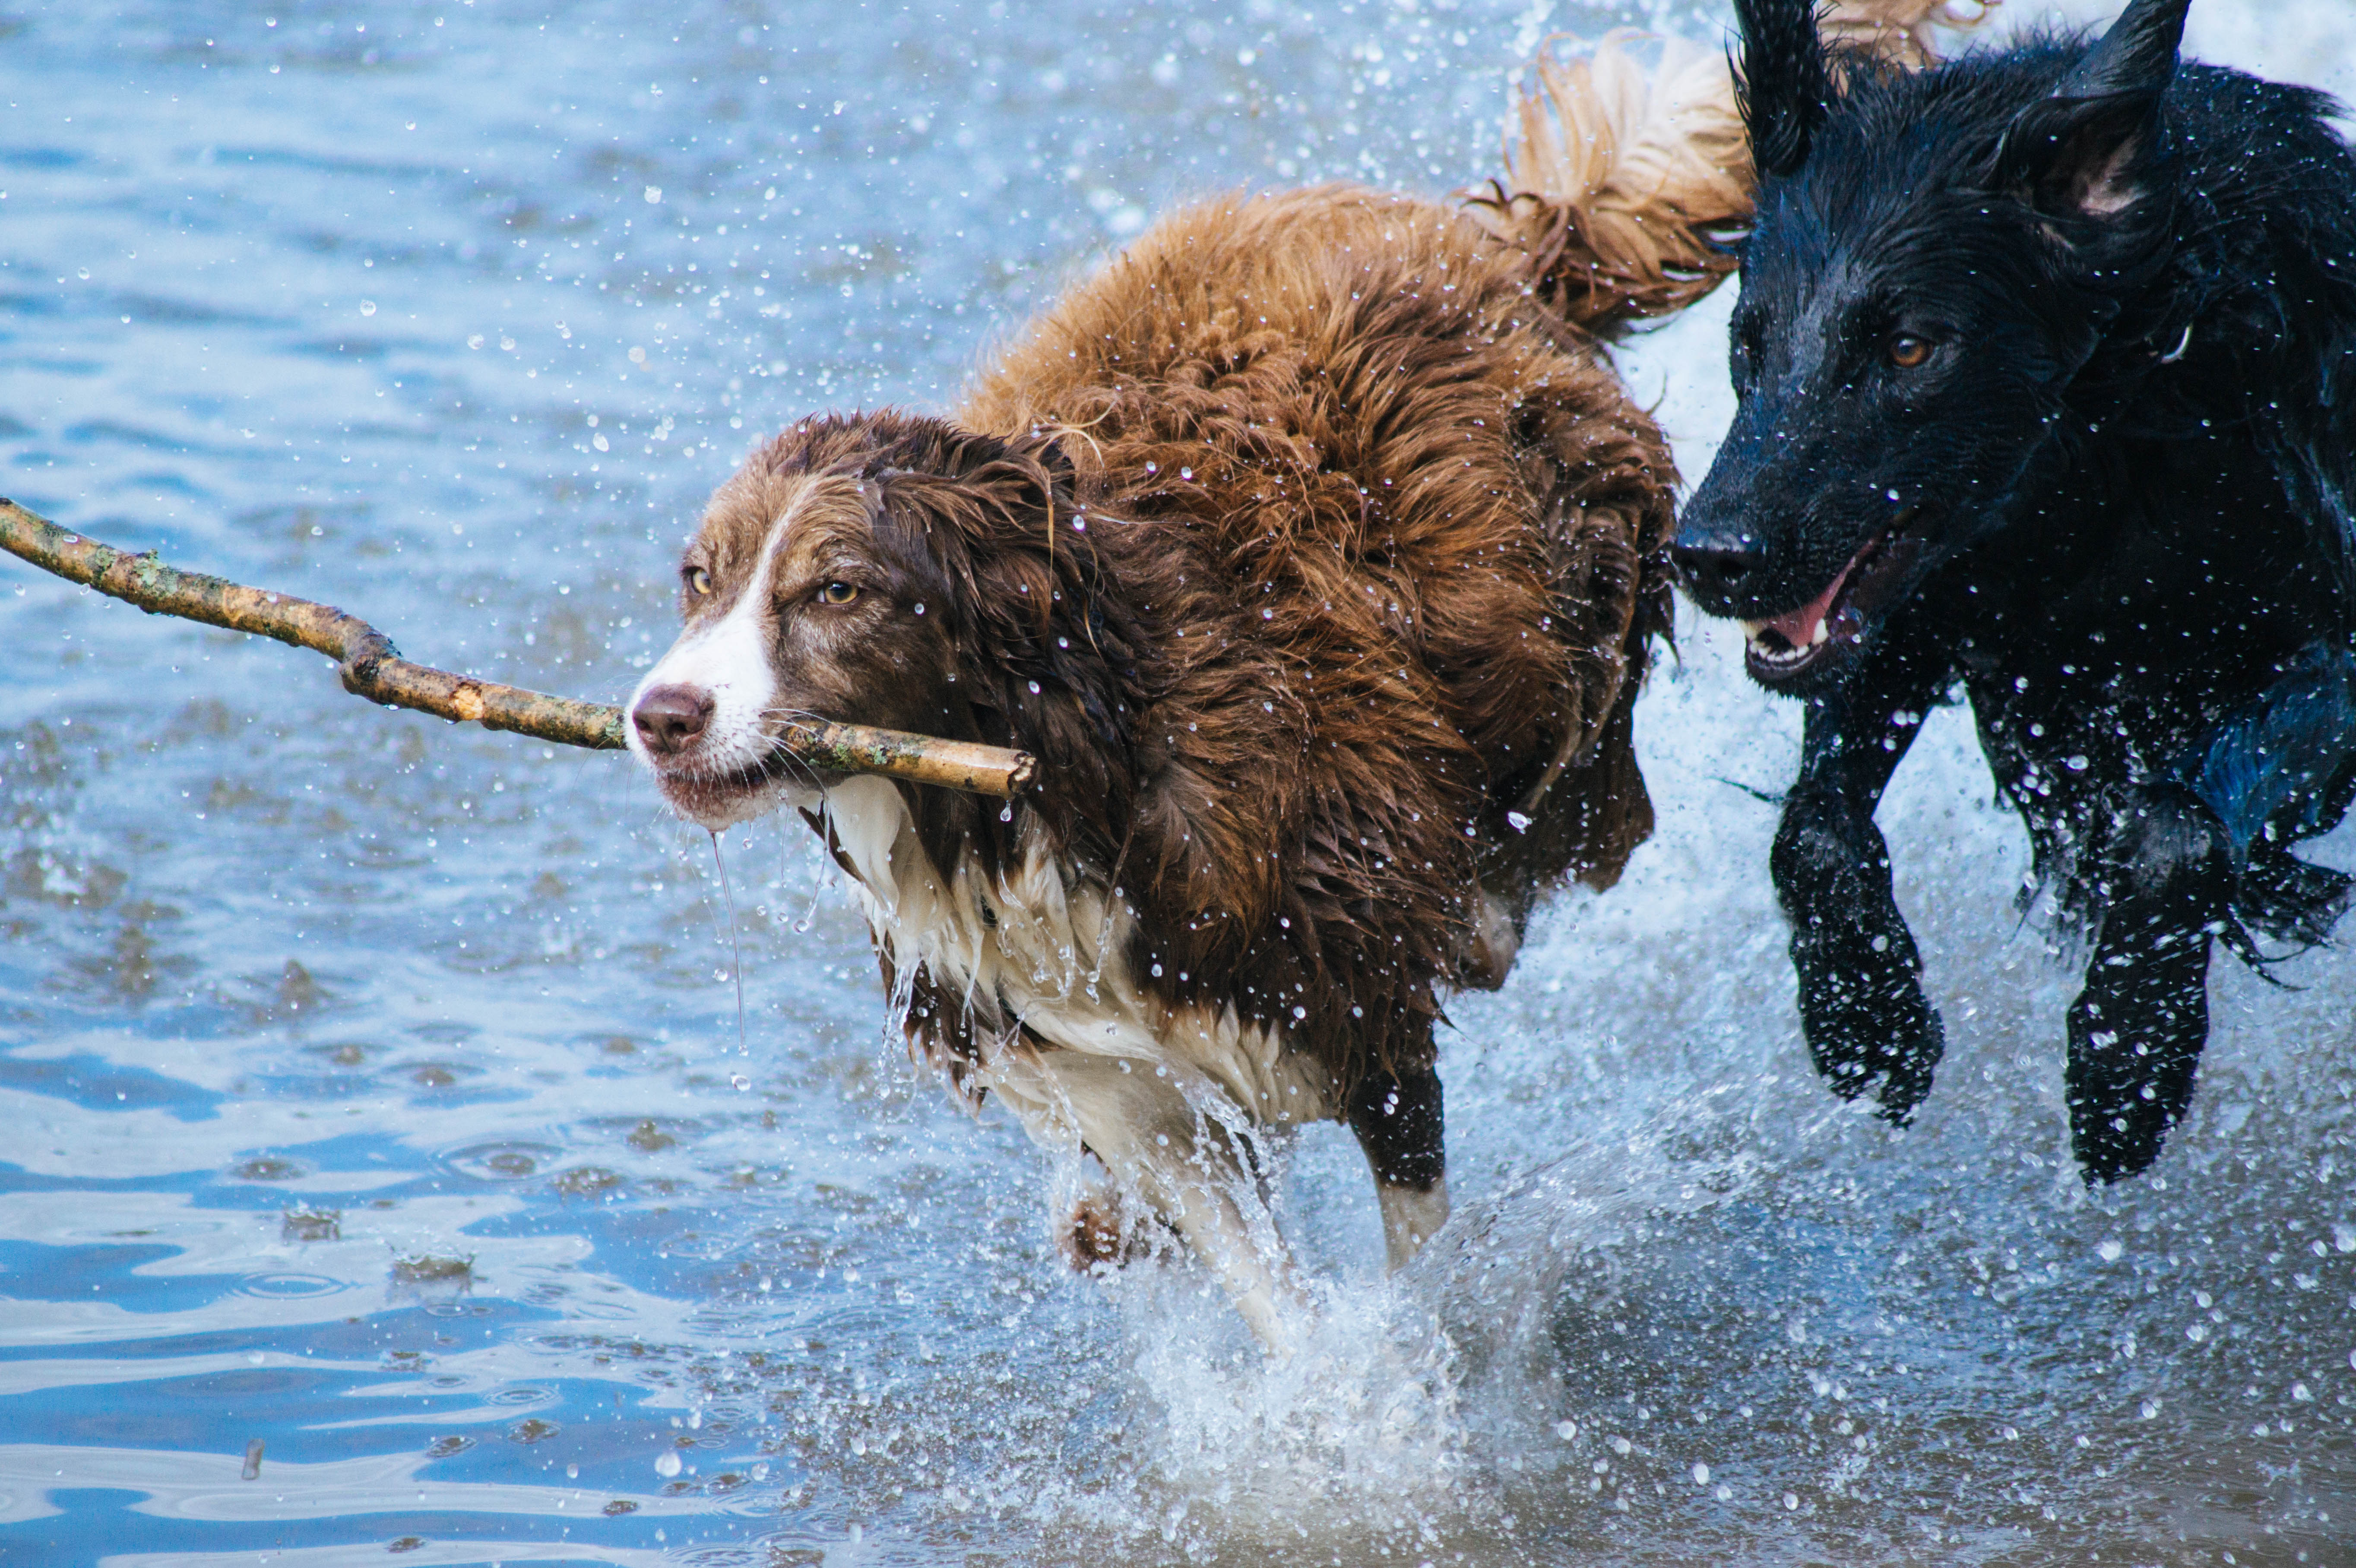 Dogs cooling off in the water!